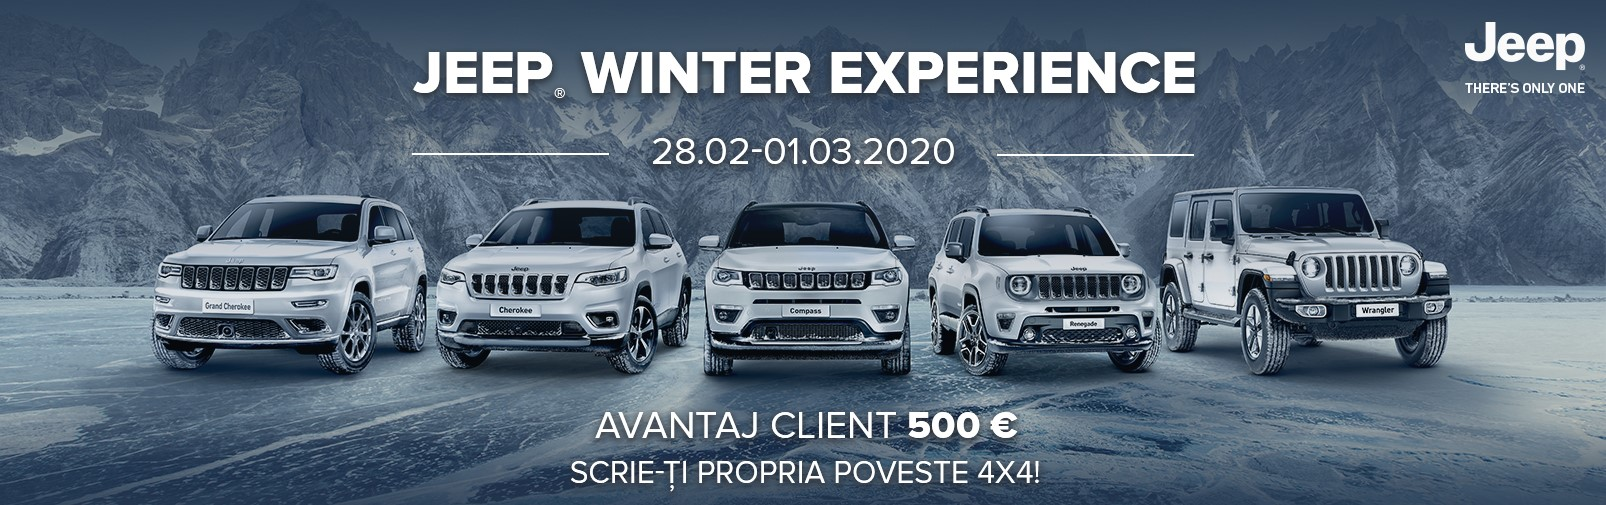 jeep winter experience - 28.02 - 01.03.2020